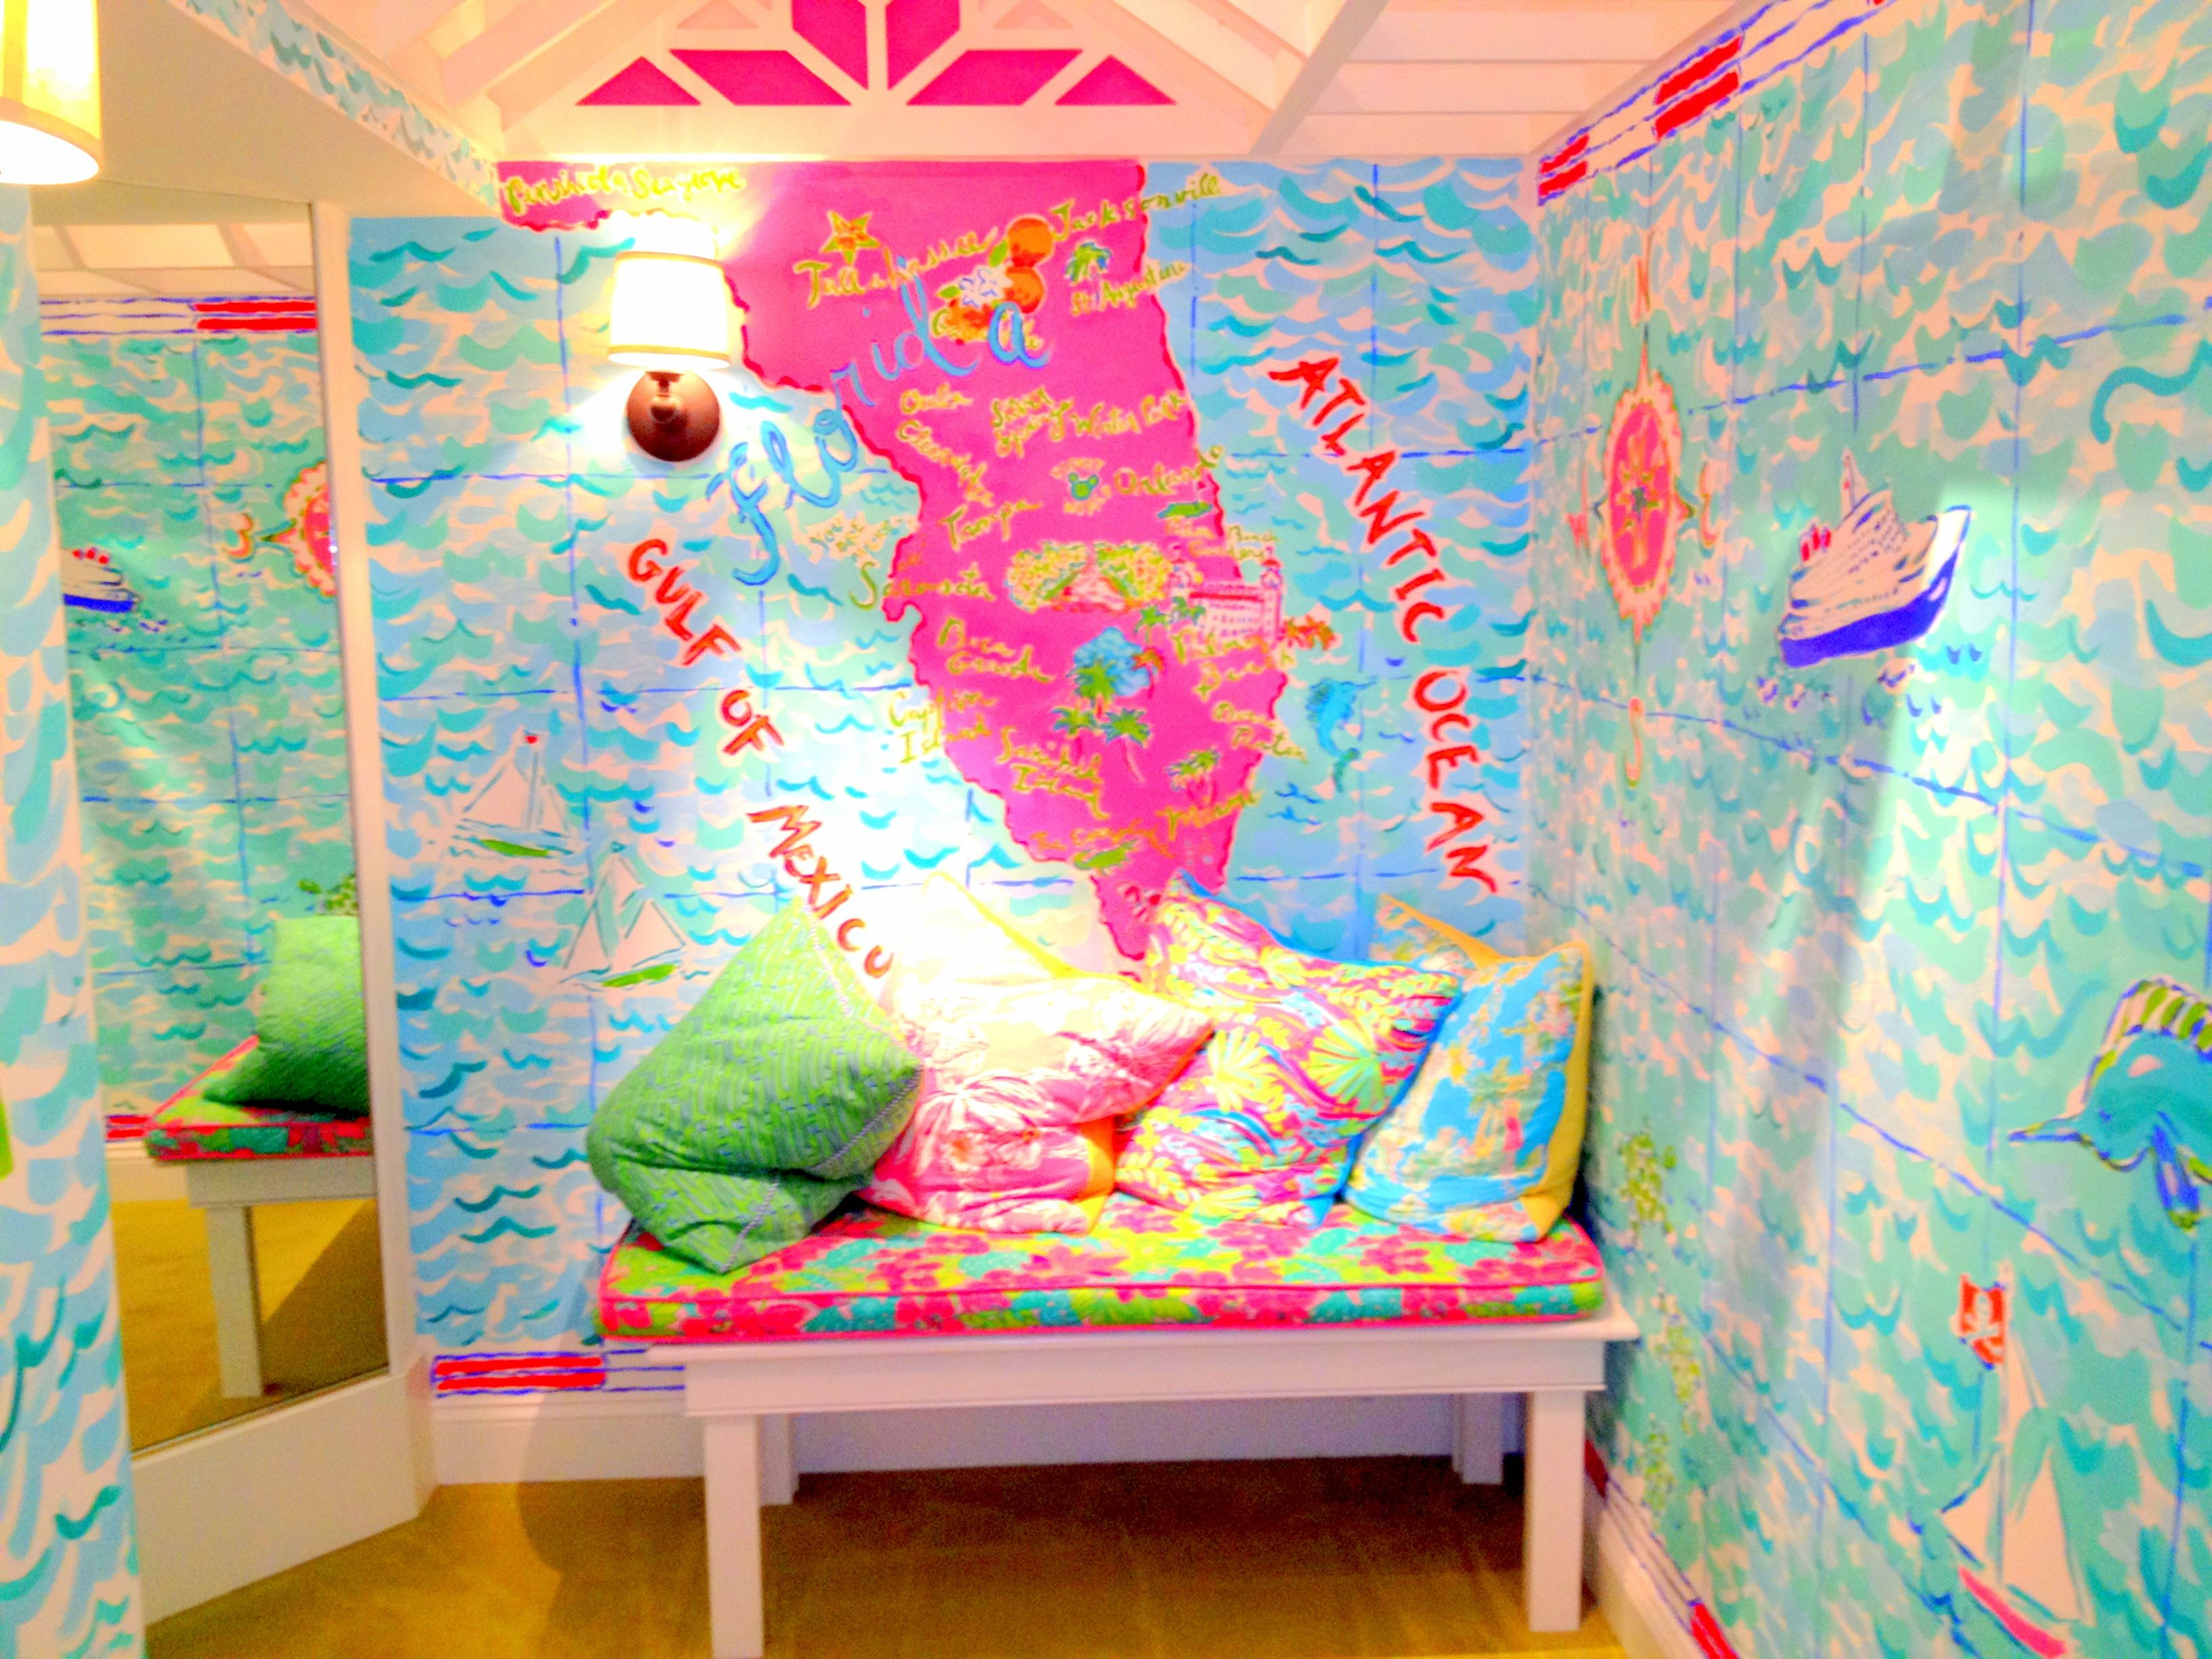 Lilly Pulitzer Dressing Room At St. Armands Lilly Store!